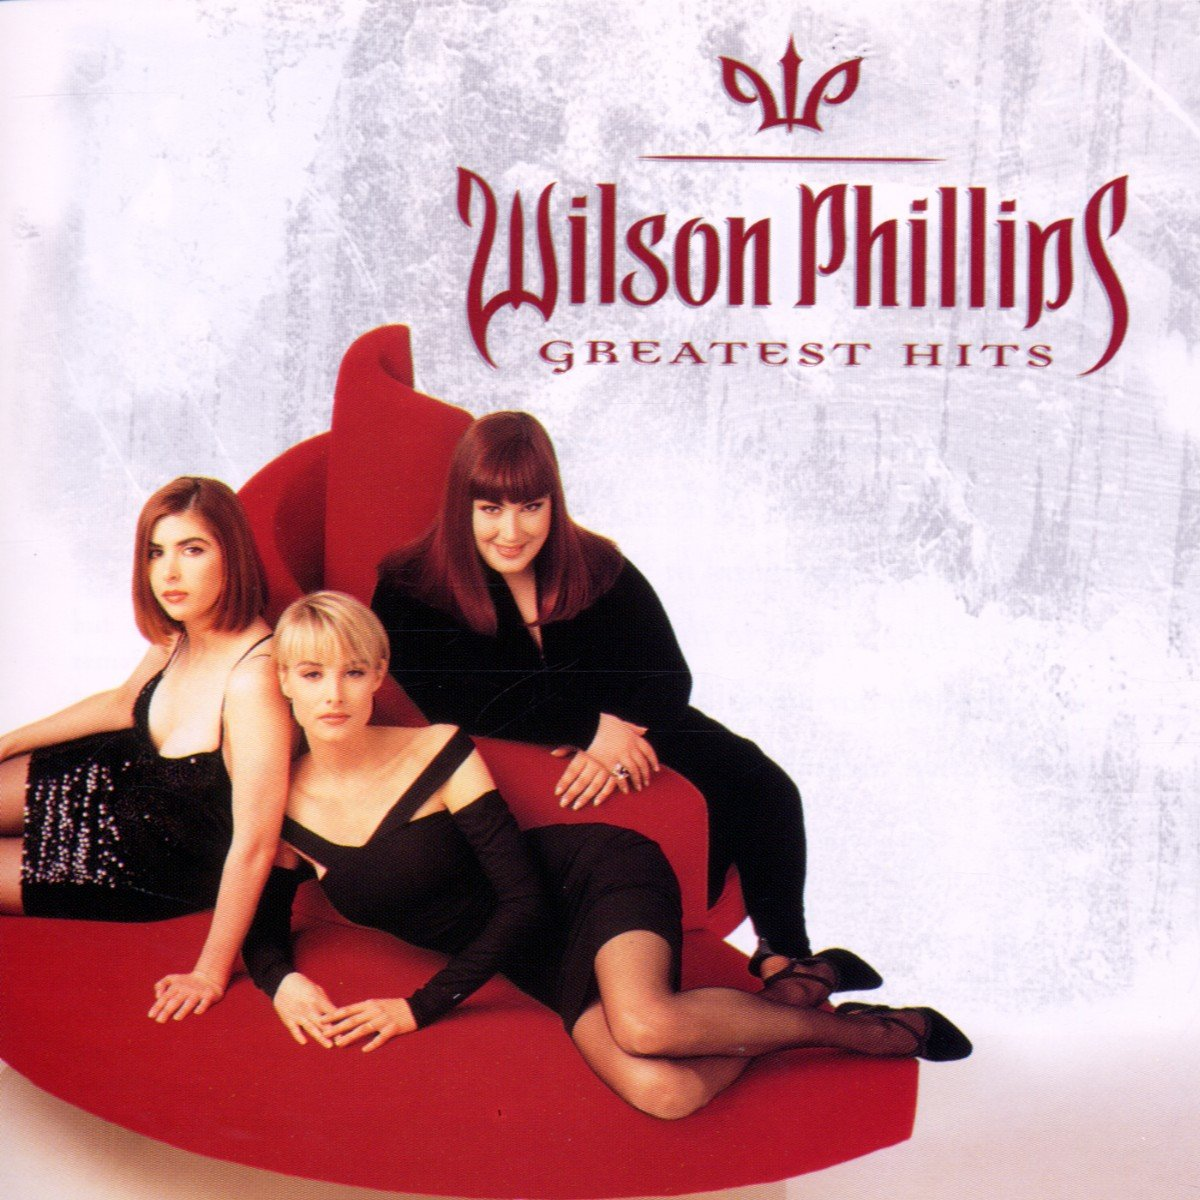 Wilson Phillips: Greatest Hits by Wilson Phillips